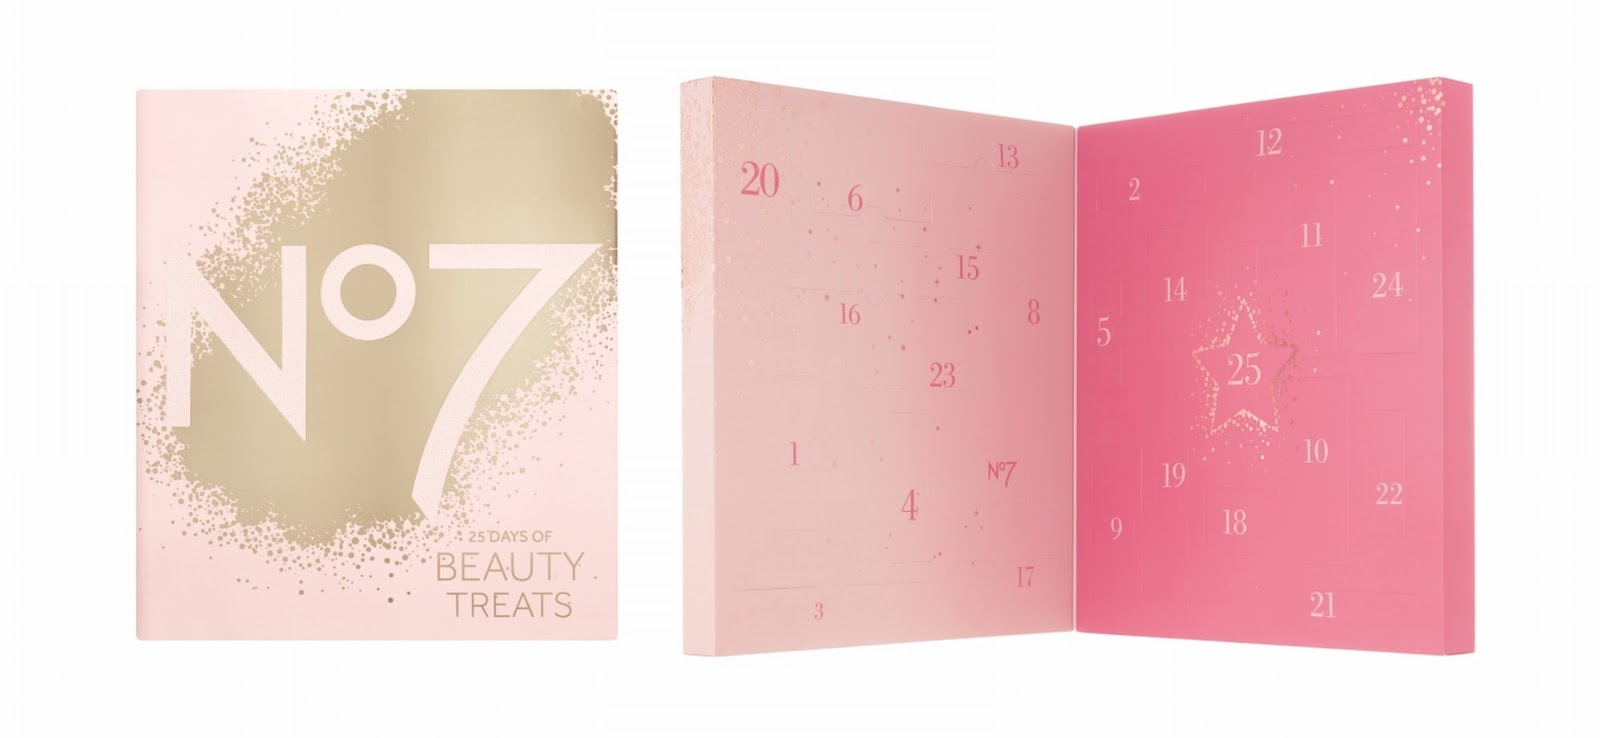 no 7 advent calendar, boots advent calendar, beauty advent calendar, advent calendar 2014